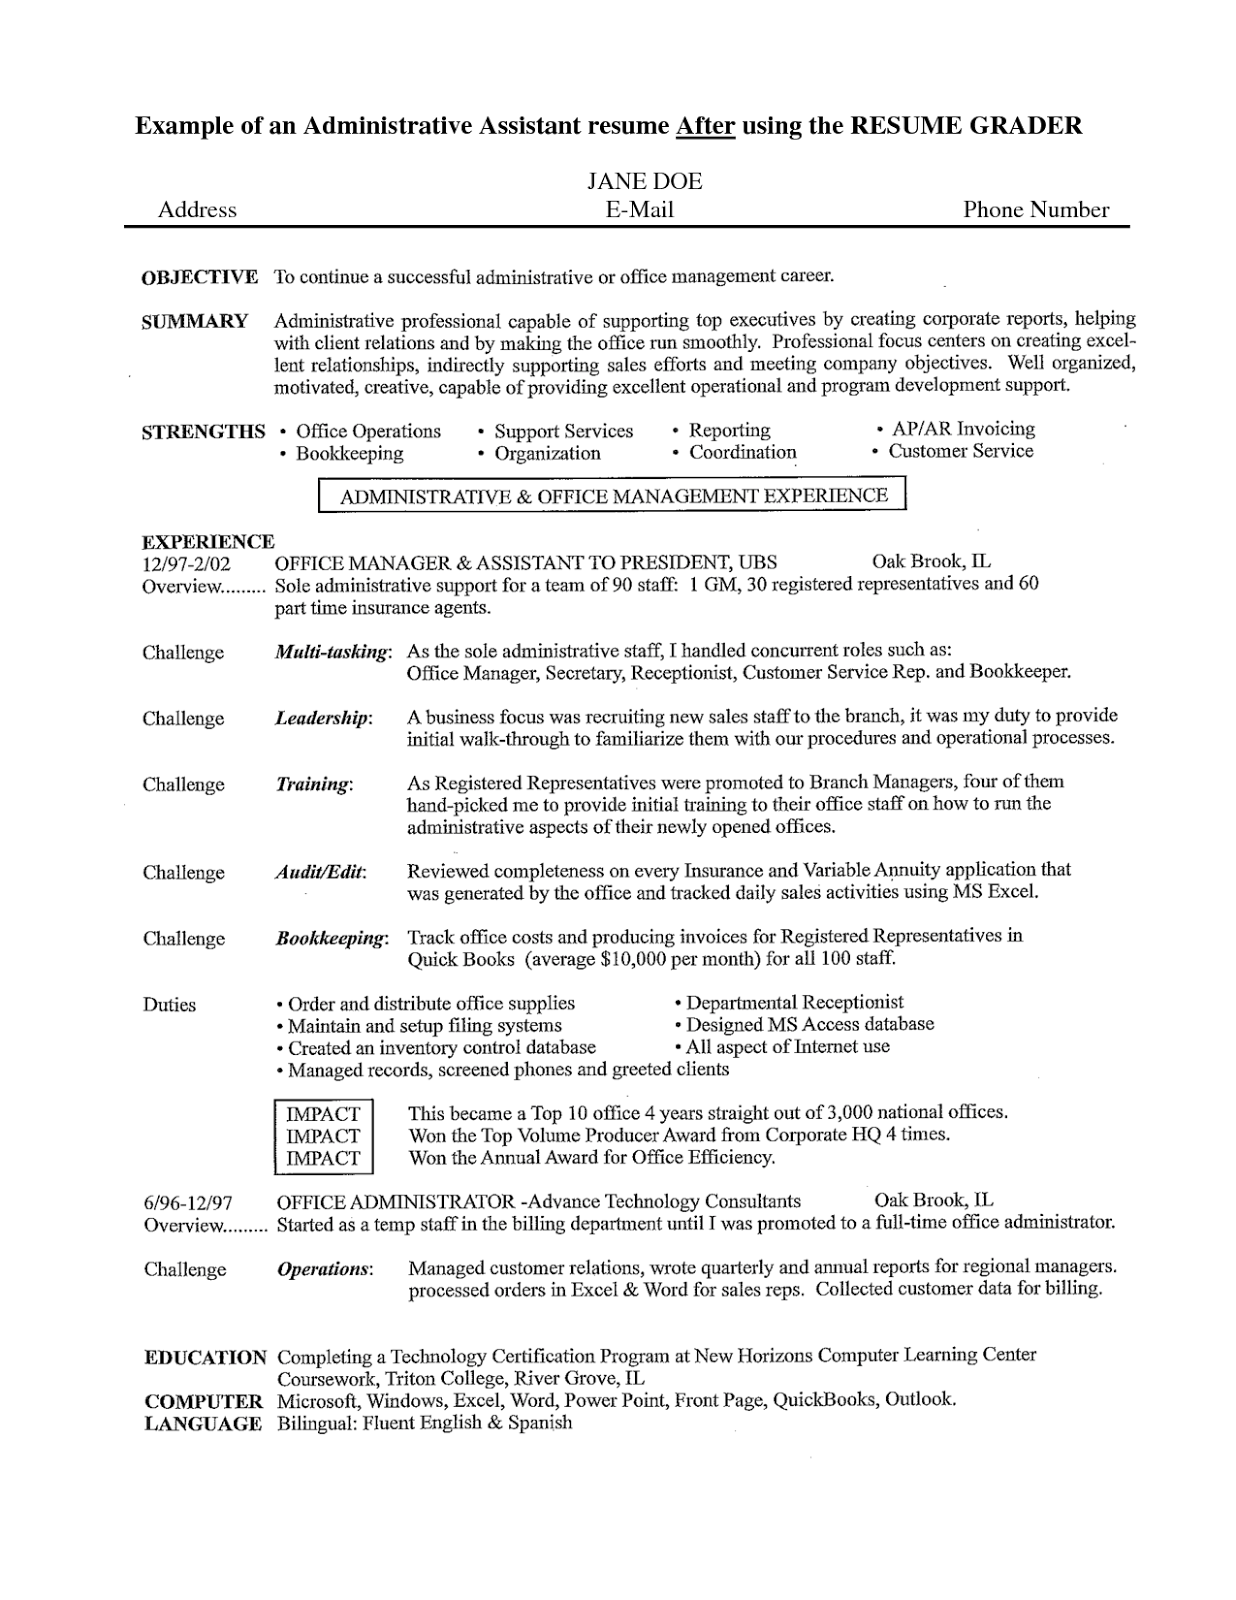 sample objective on resume for administrative assistant free sample resumes download